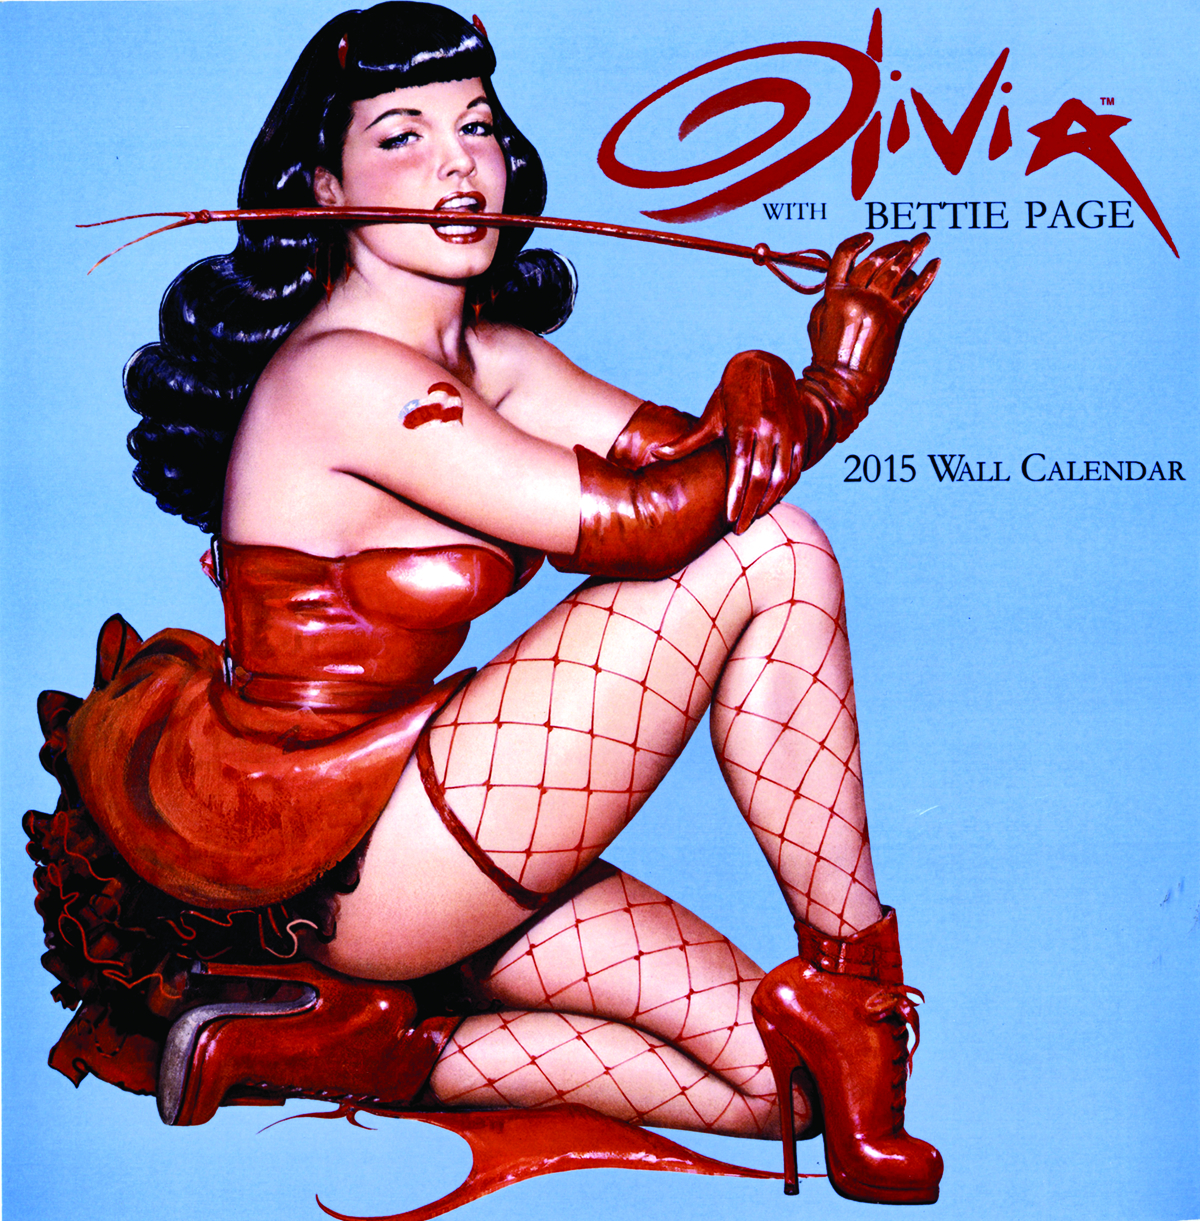 OLIVIA BETTIE PAGE 2015 WALL CAL